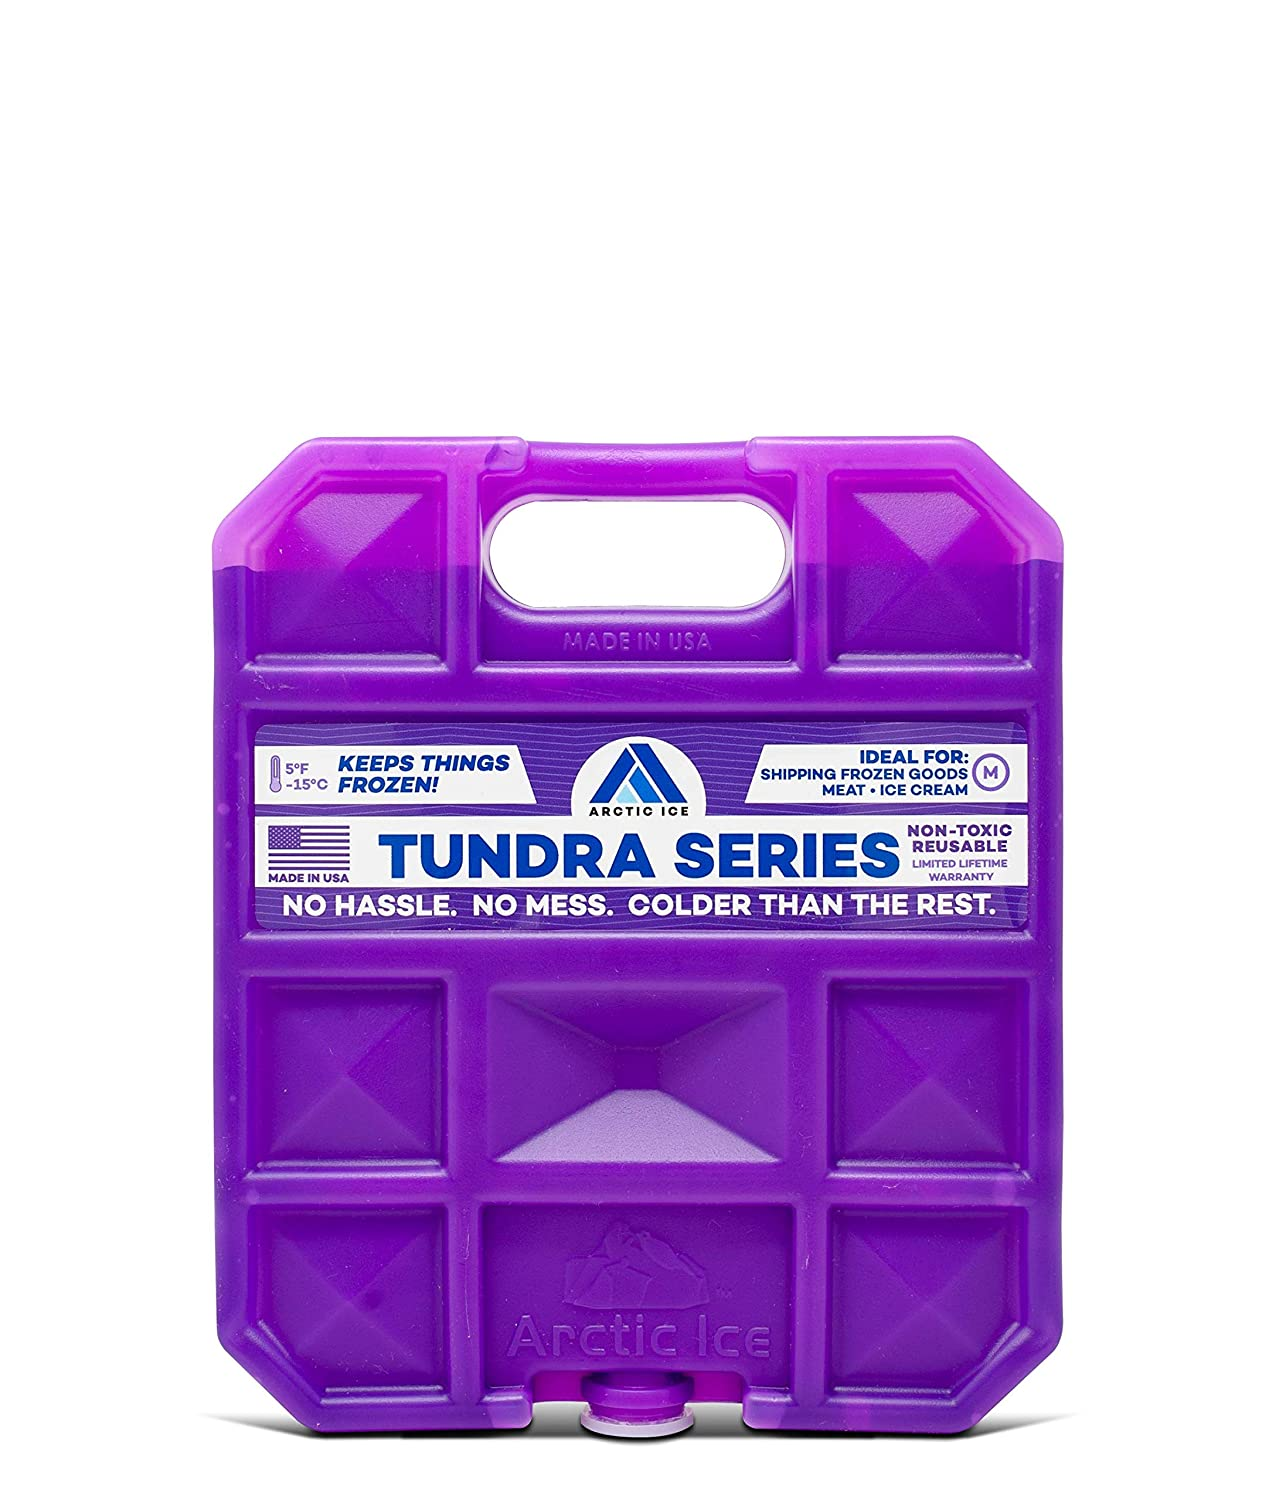 Arctic Ice Tundra Series Reusable Cooler Pack 1201-P